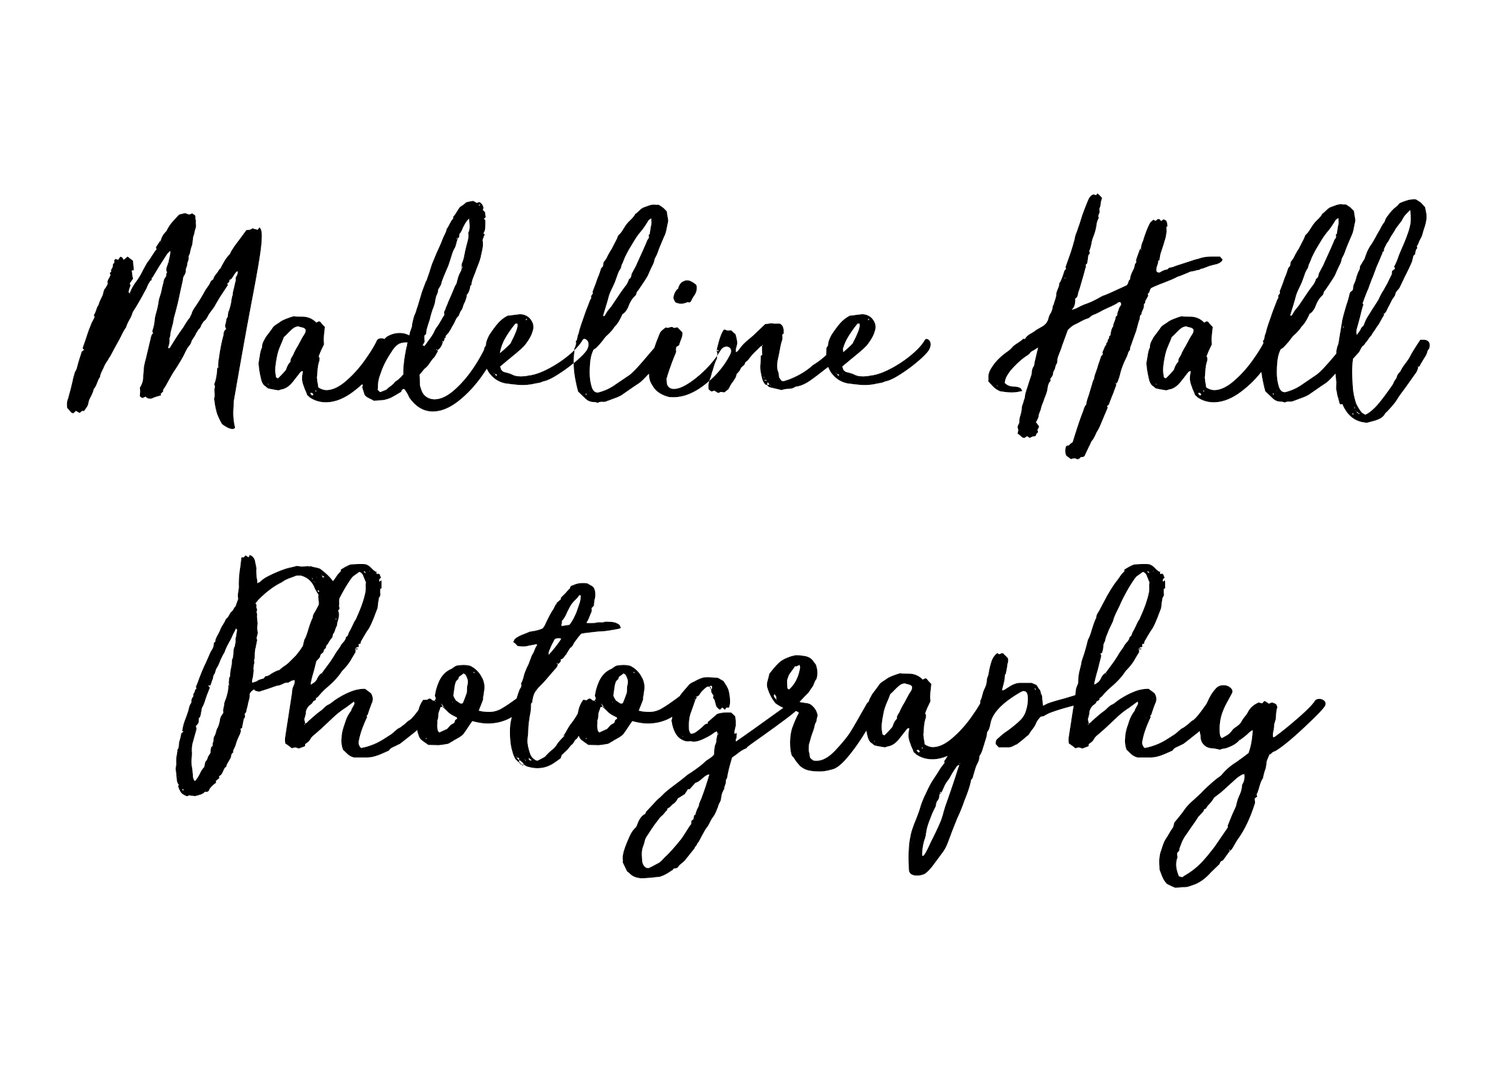 Madeline Hall Photography